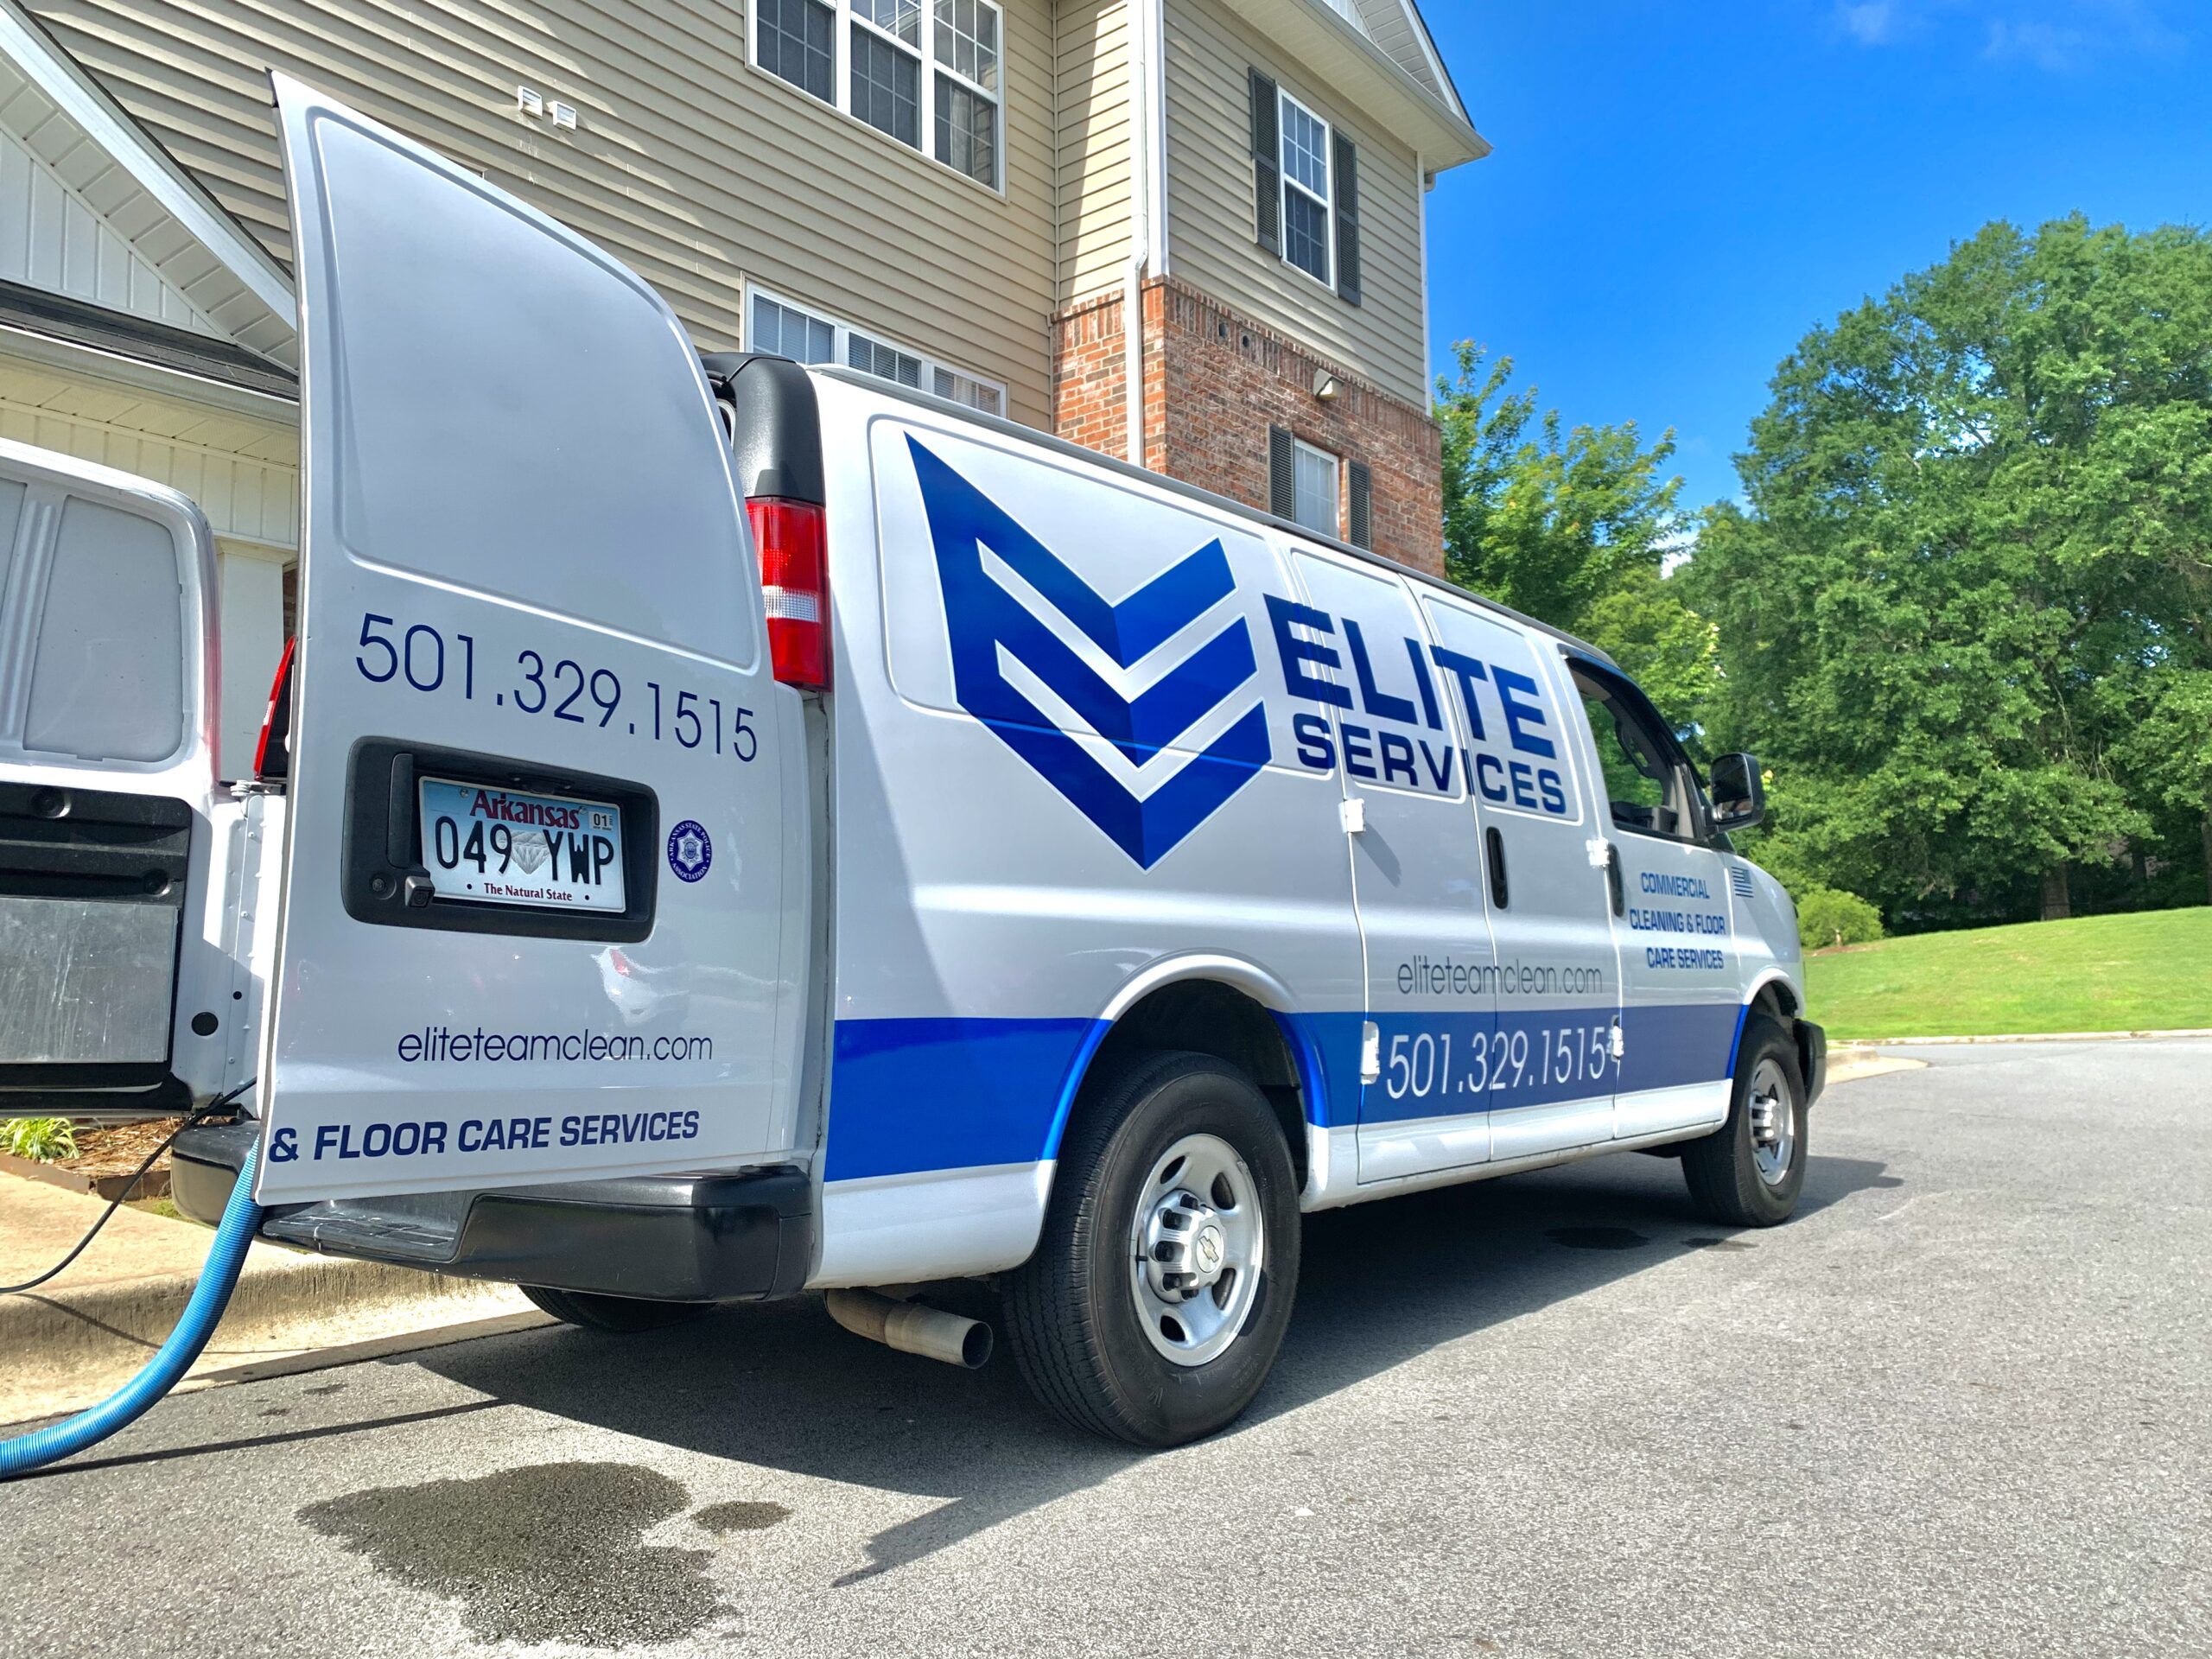 Elite Services Central Arkansas Carpet Upholstery Cleaning